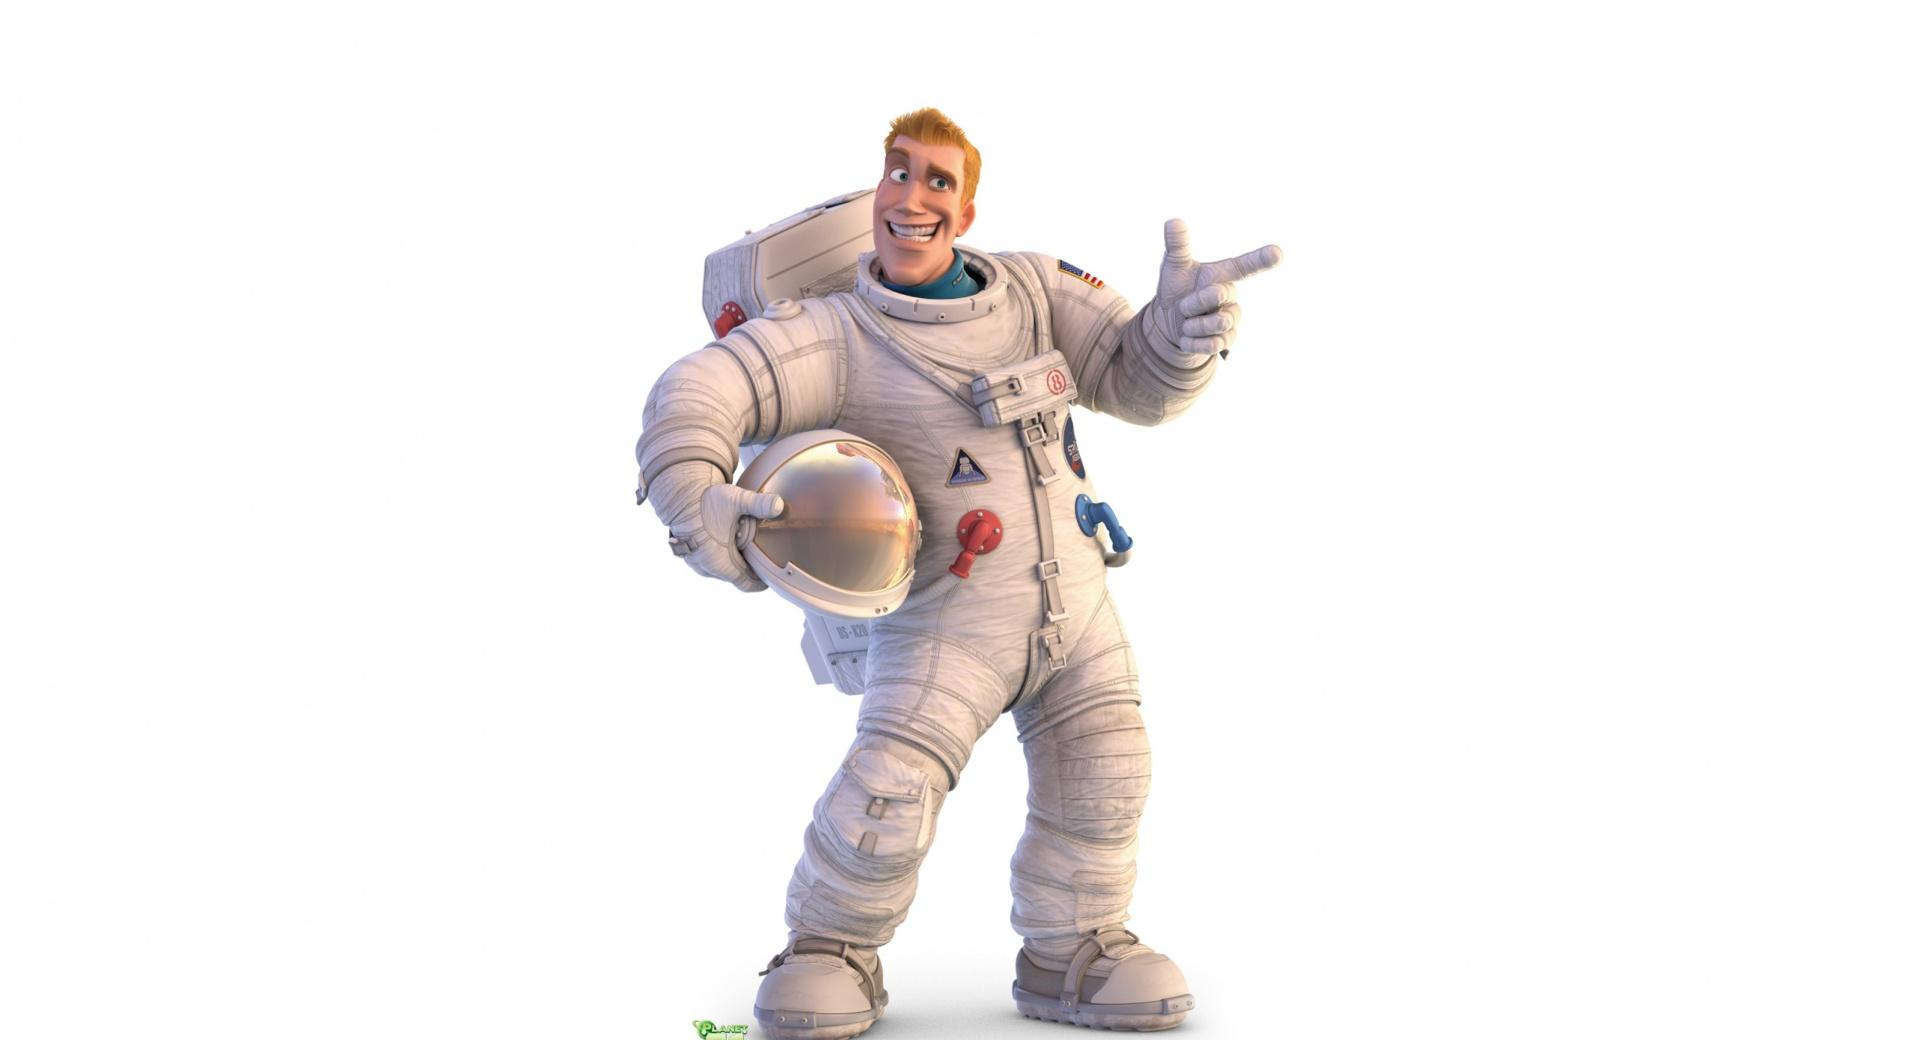 Captain Charles Chuck Baker Planet 51 wallpapers HD quality